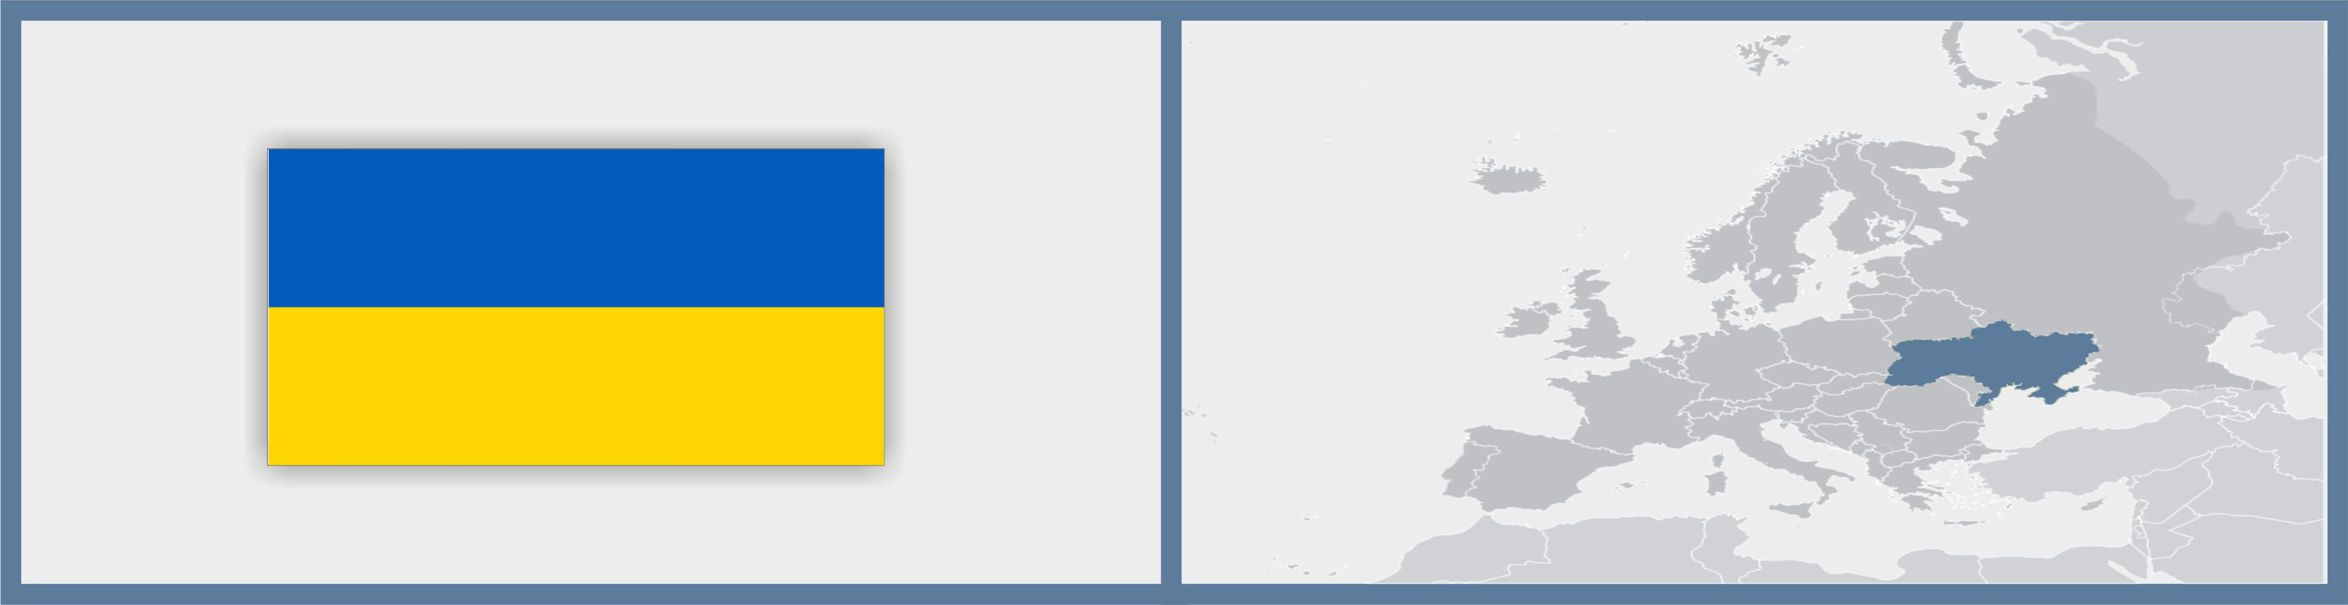 Intellectual property system in Ukraine